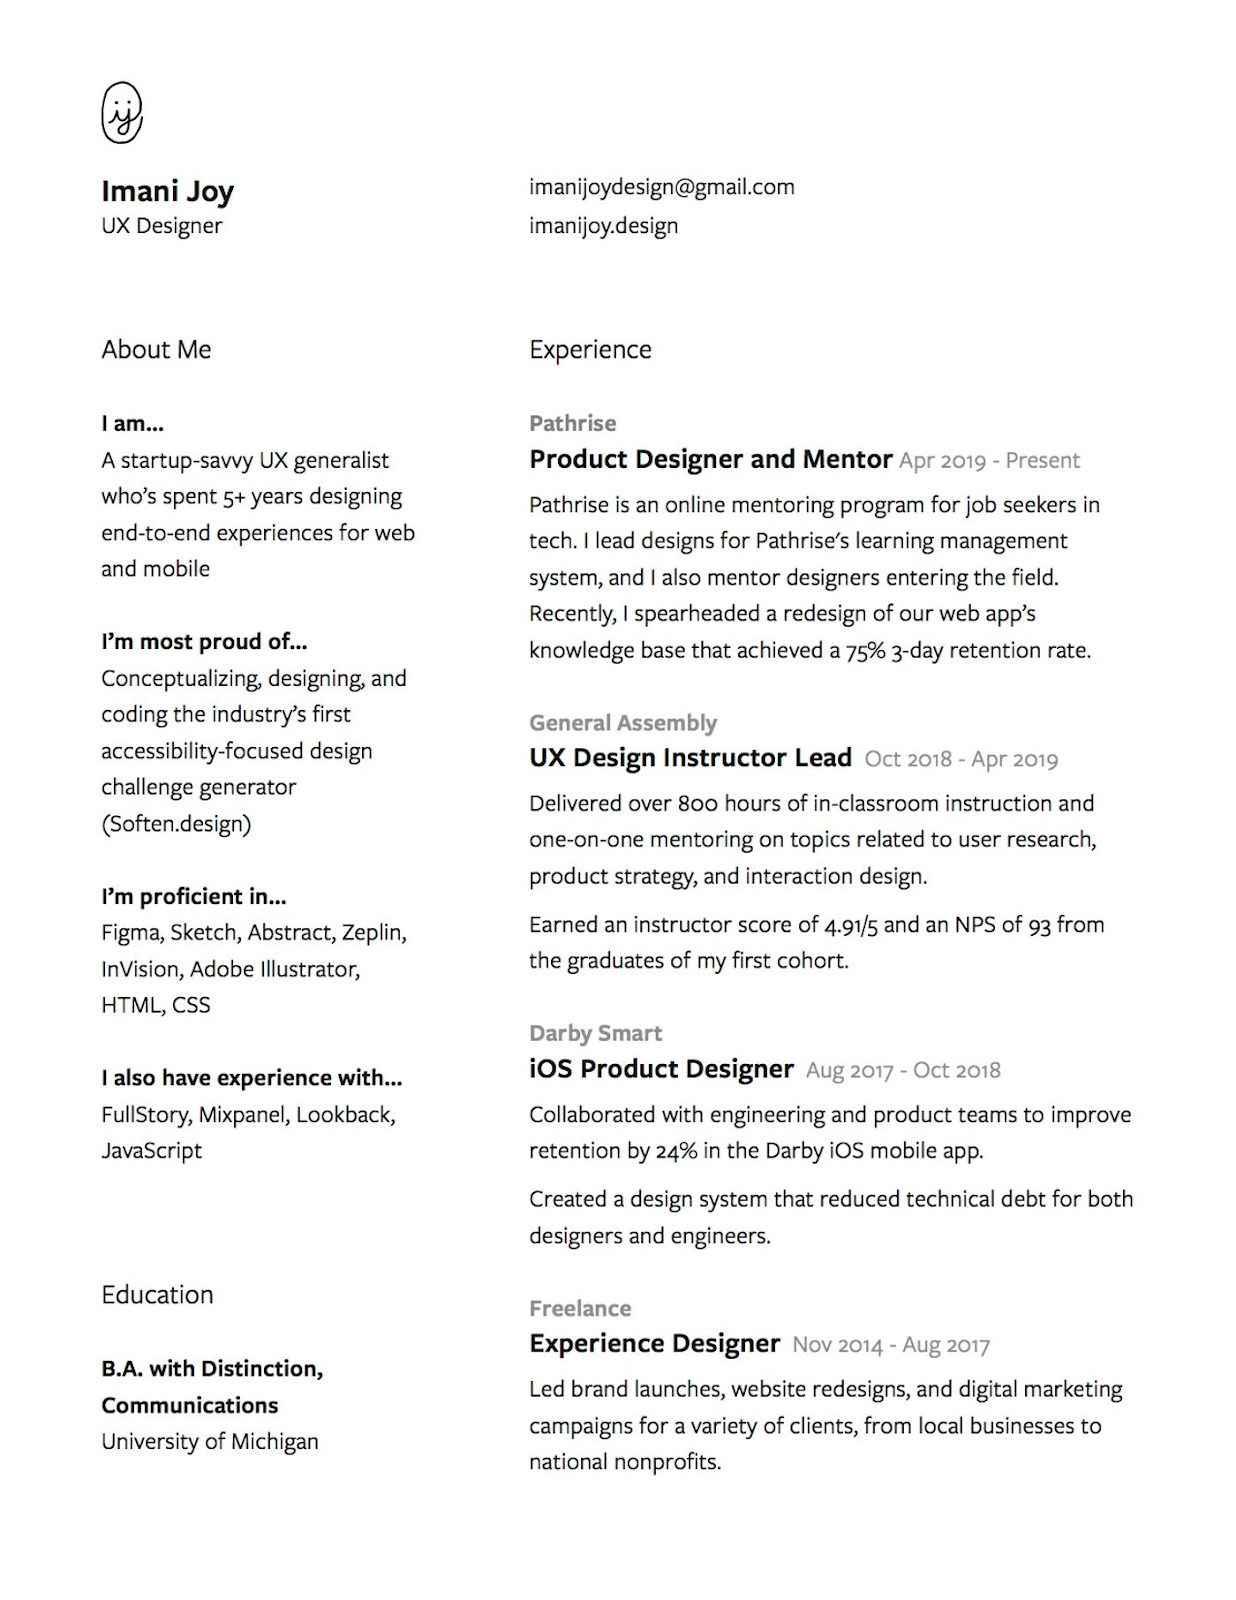 black and white design resume example for UX designer